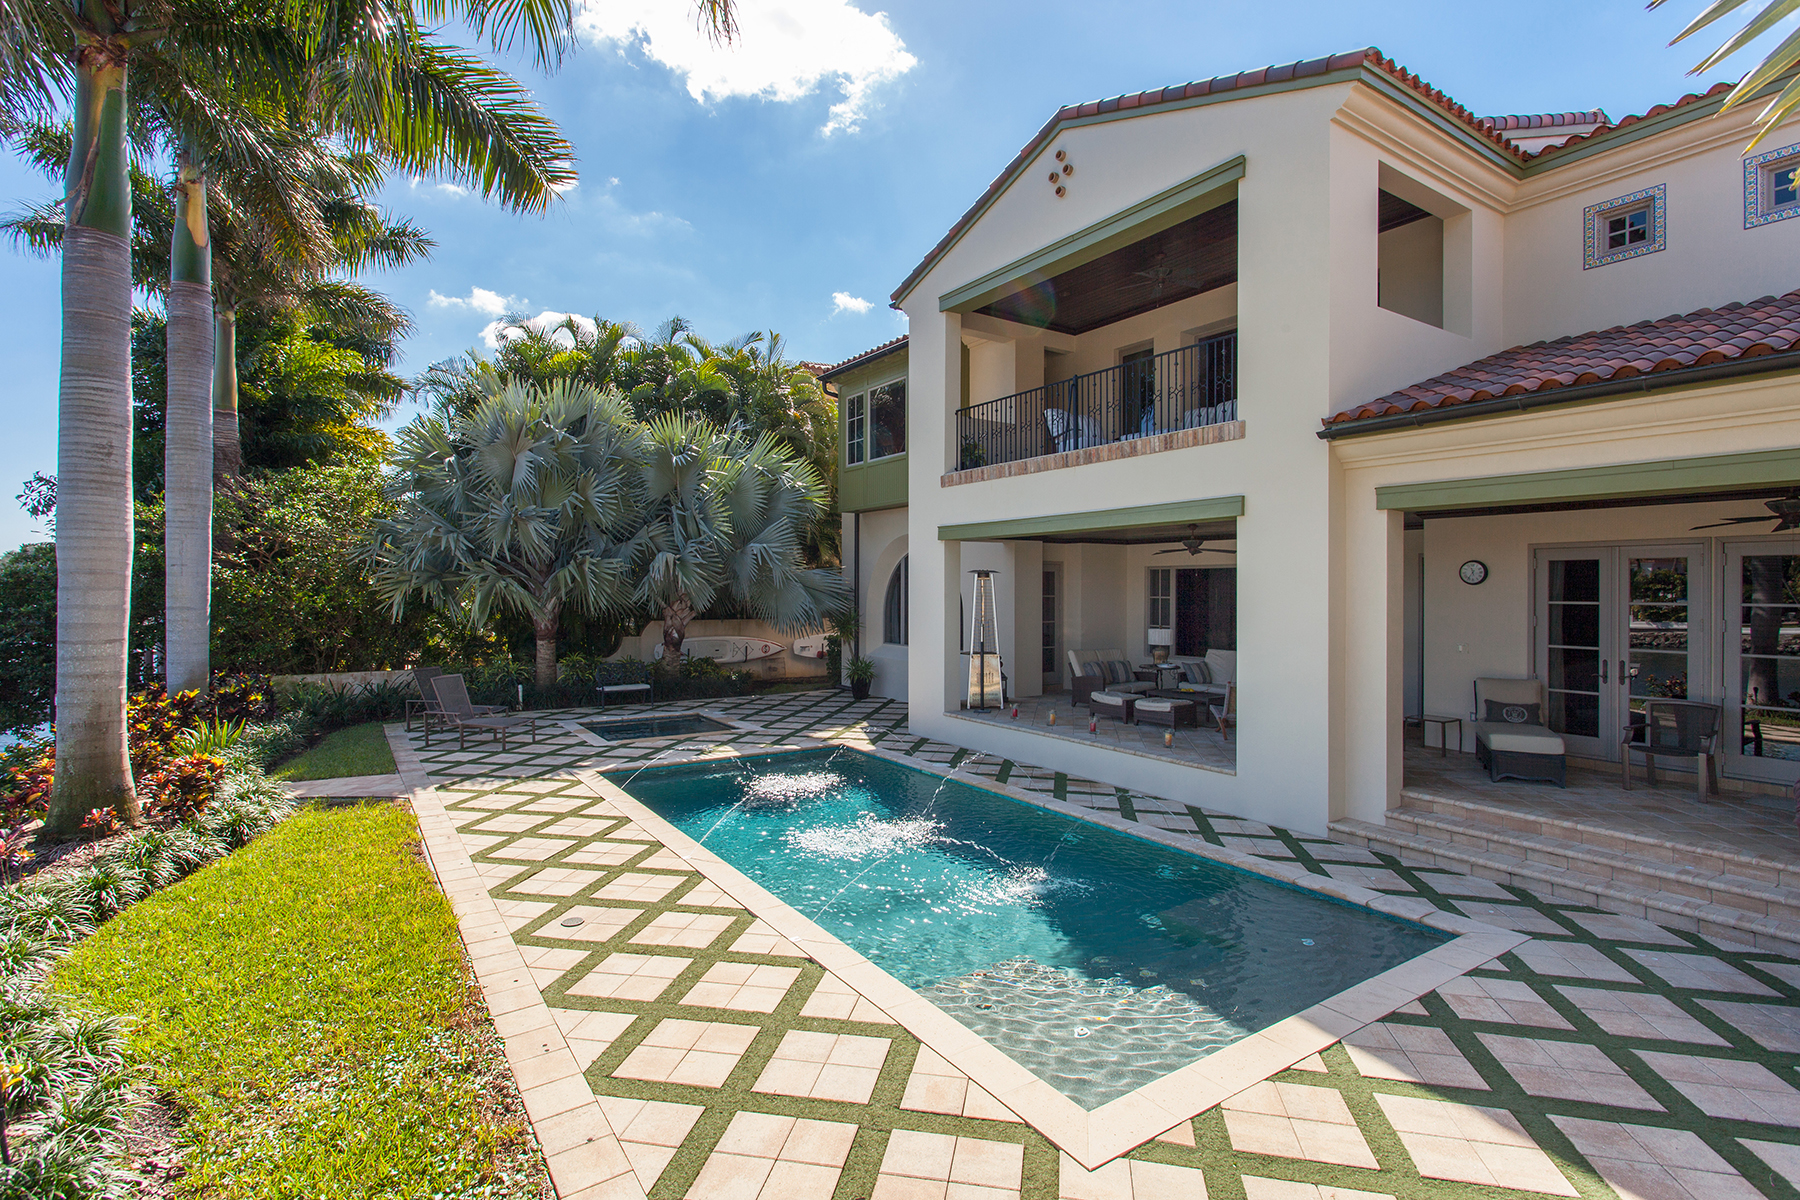 Single Family Home for Sale at SNELL ISLE 851 Brightwaters Blvd NE Snell Isle, St. Petersburg, Florida, 33704 United States